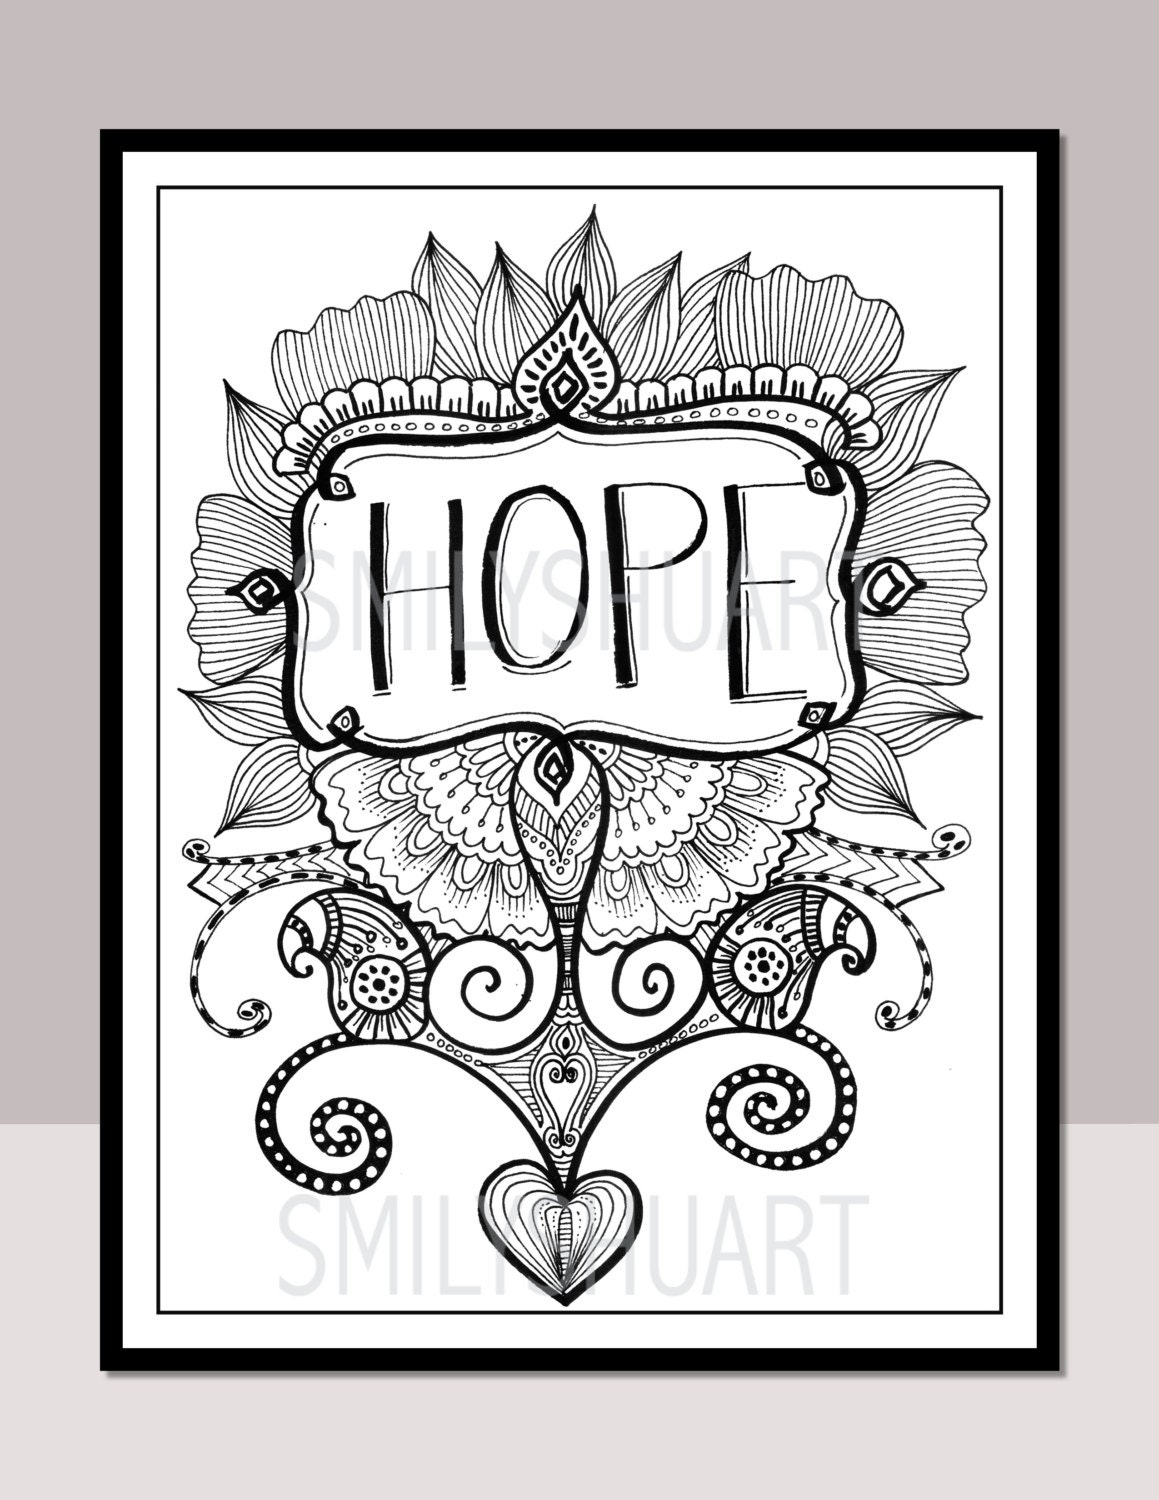 hope printable motivational quotes christmas quotes etsy. Black Bedroom Furniture Sets. Home Design Ideas